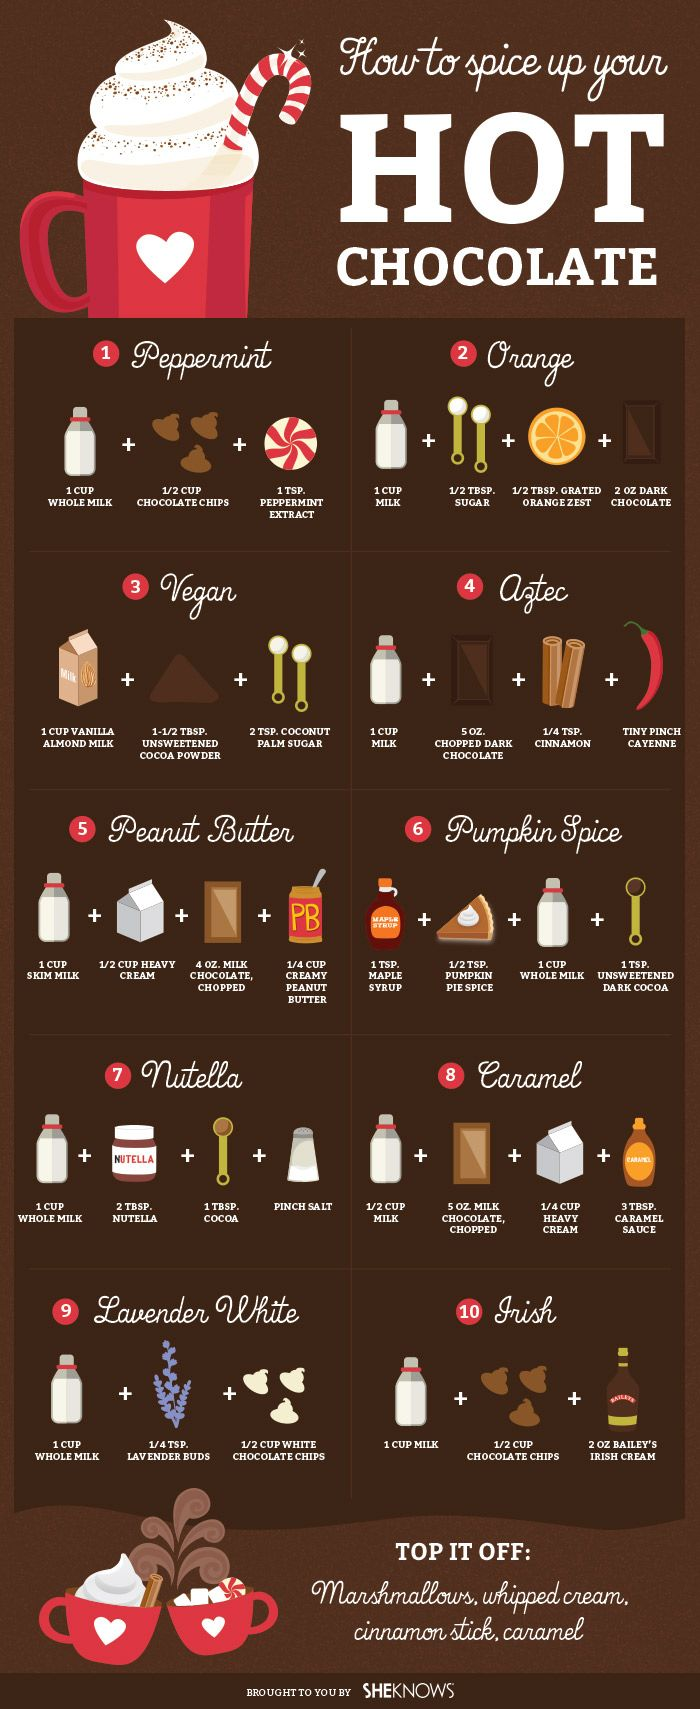 Upgrade your hot chocolate with these 18 amazing flavor combos.